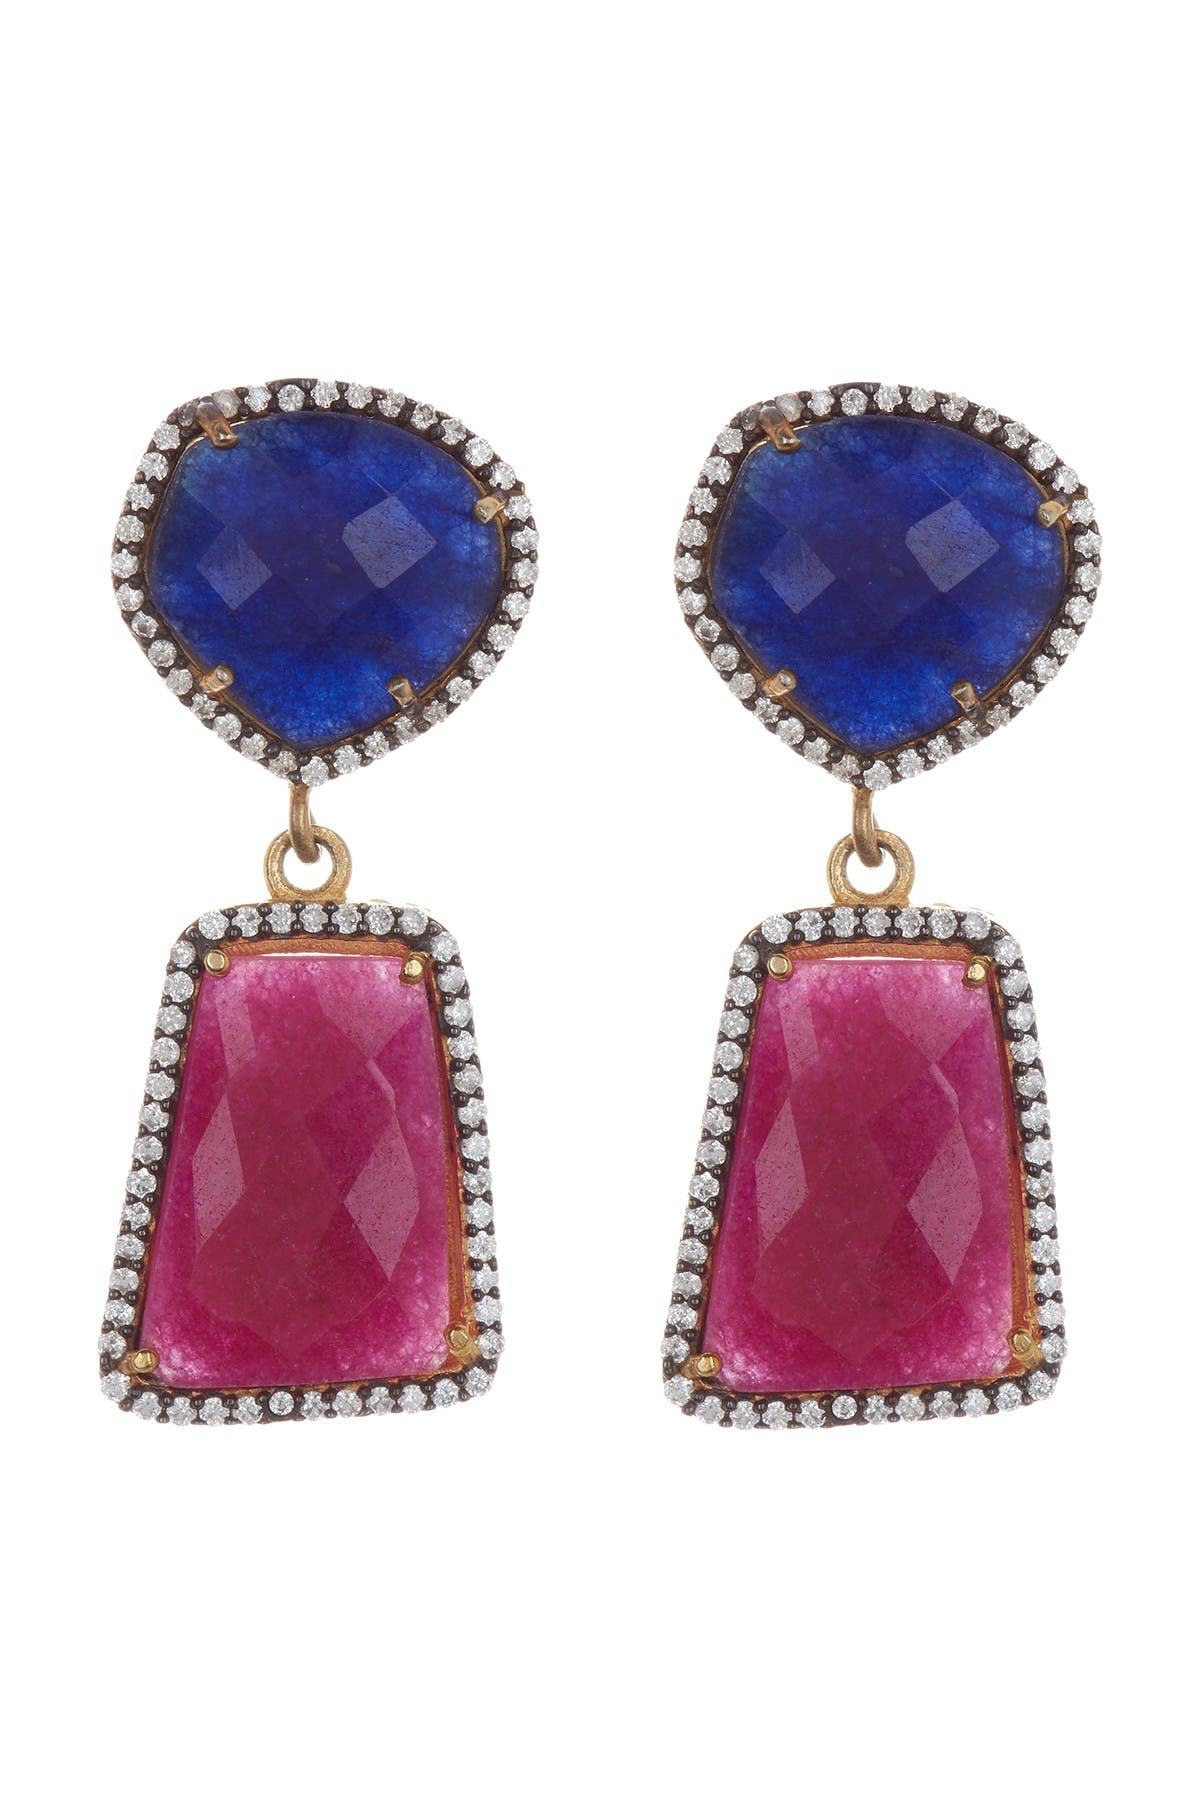 Image of Forever Creations USA Inc. Gold Vermeil Sterling Silver Ruby & Sapphire Drop Earrings